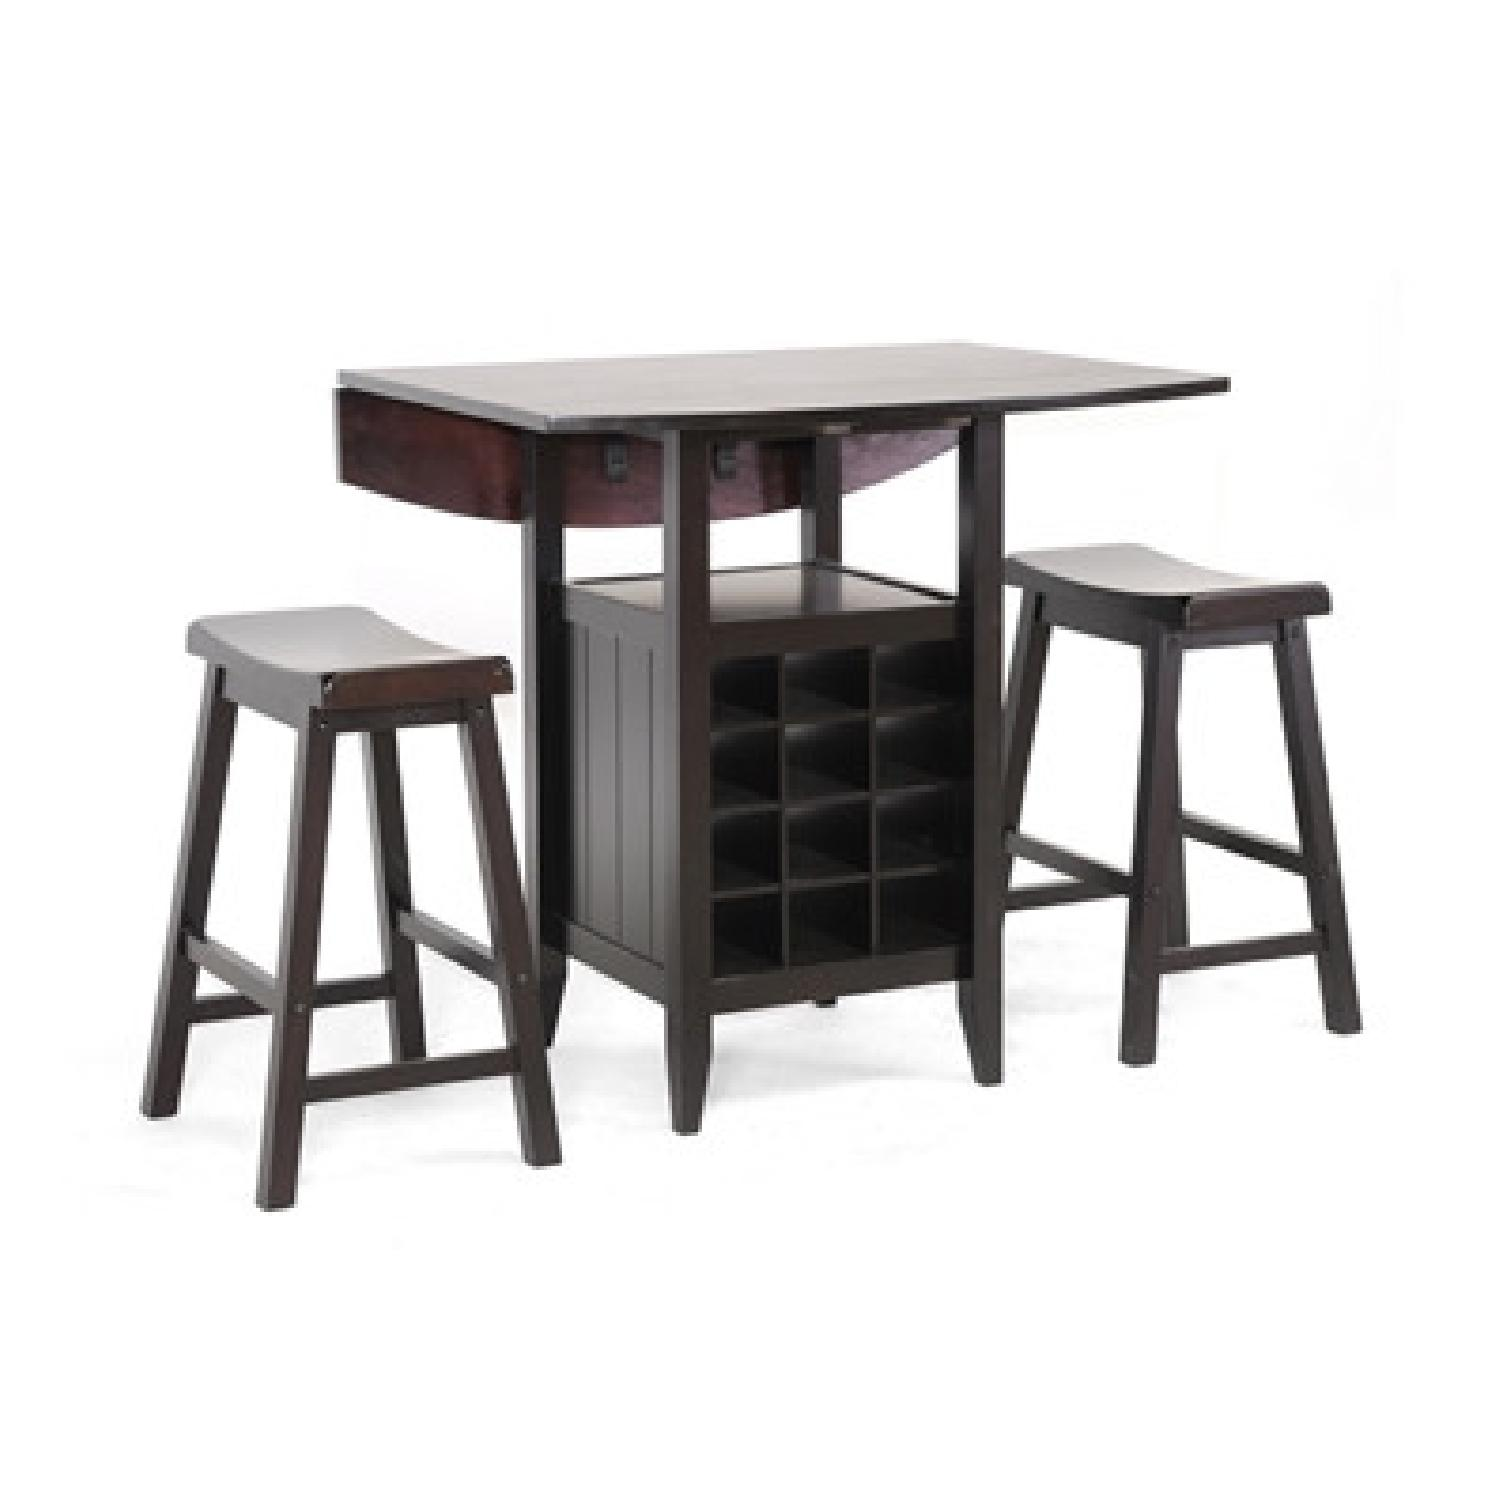 Baxton Studio 3-Piece Drop-Leaf Dining Set w/ Wine Rack - image-0